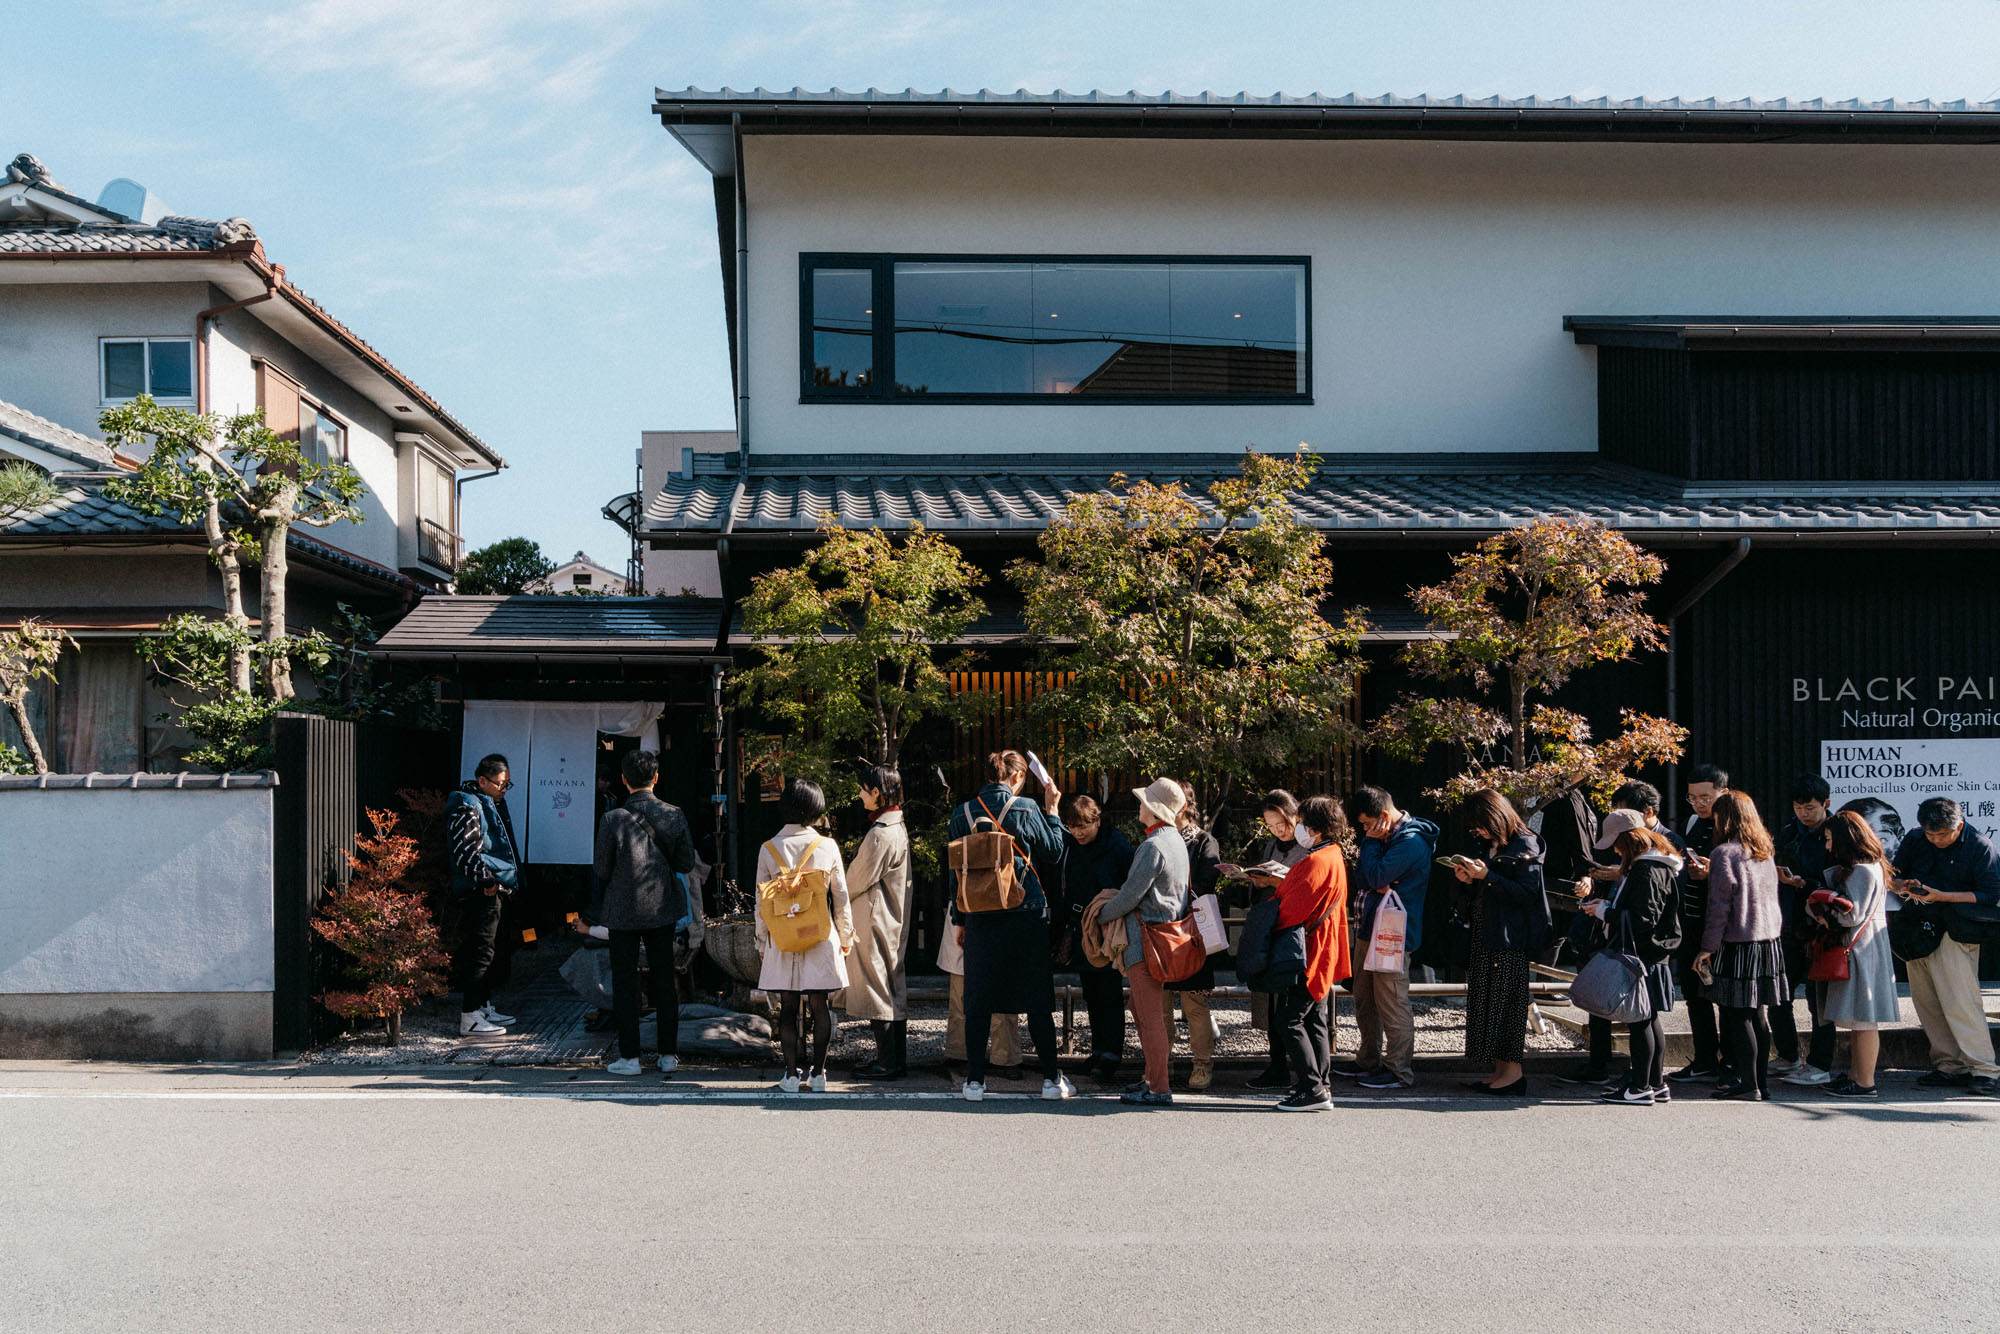 Taishou HANANA   On line for when the restaurant opens at 11am. They are known for chazuke, a simple Japanese dish made by pouring green tea or dashi over cooked rice.